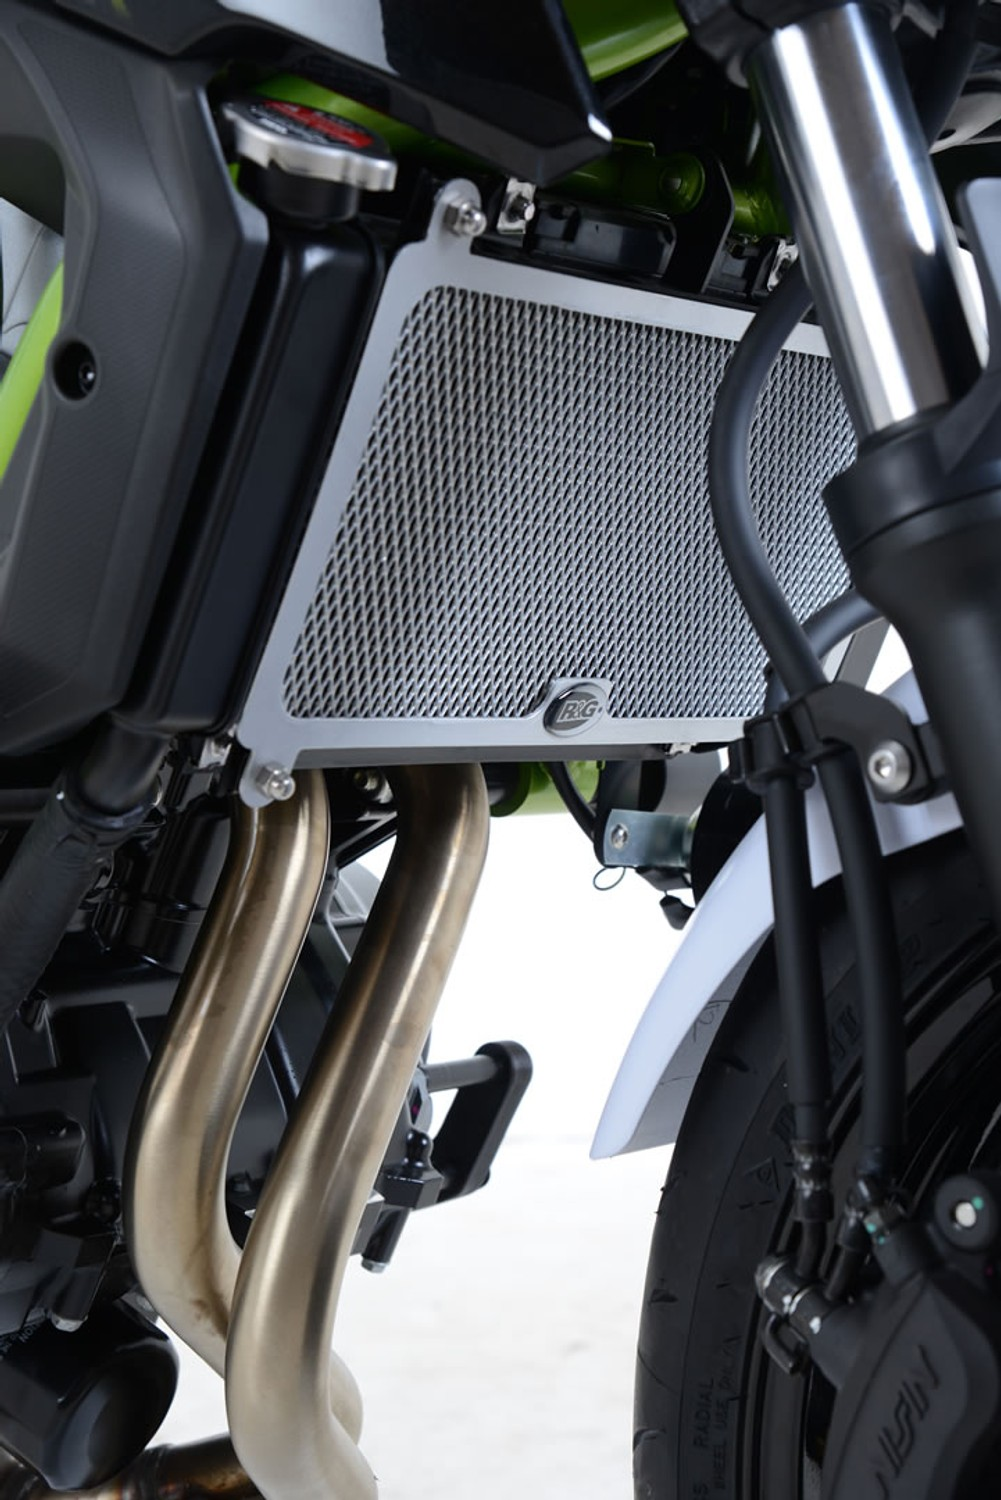 R&G Radiator Guard for Kawasaki Z650 '17- and Ninja 650 '17